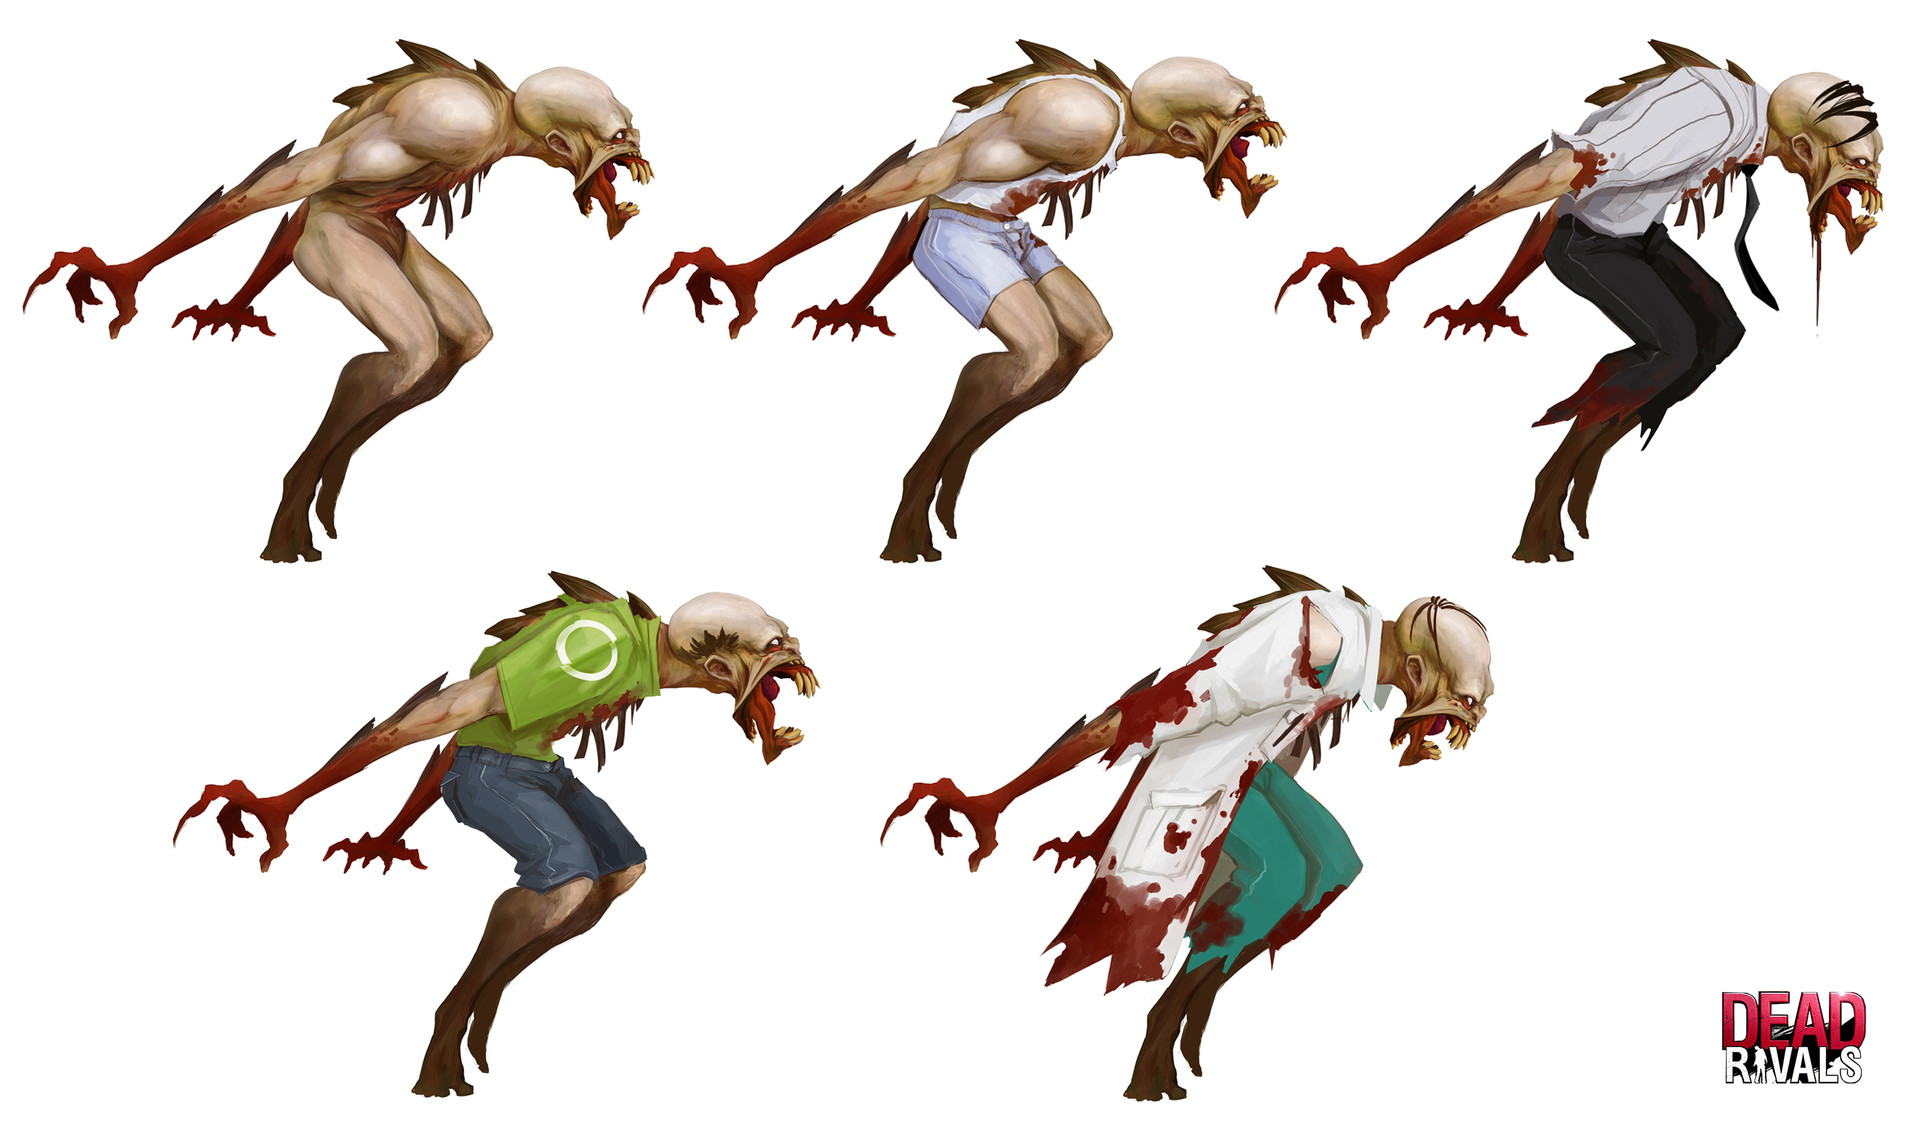 Alexandre chaudret dw characters zombies spitter01